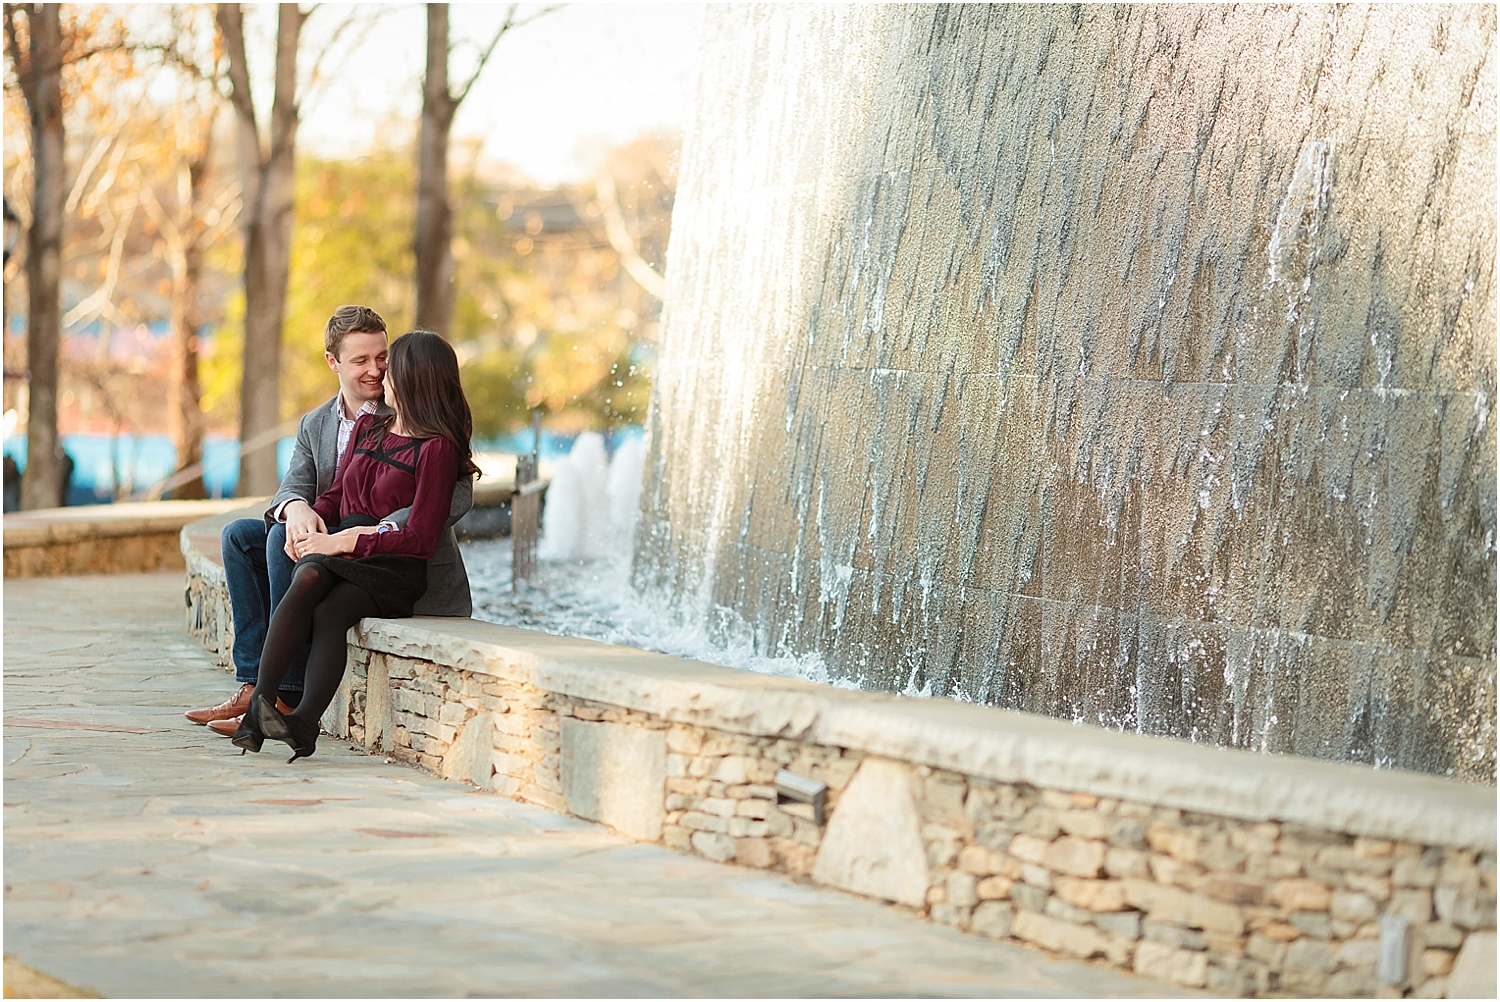 141128--8516Downtown-Greenville-engagement_blog.jpg